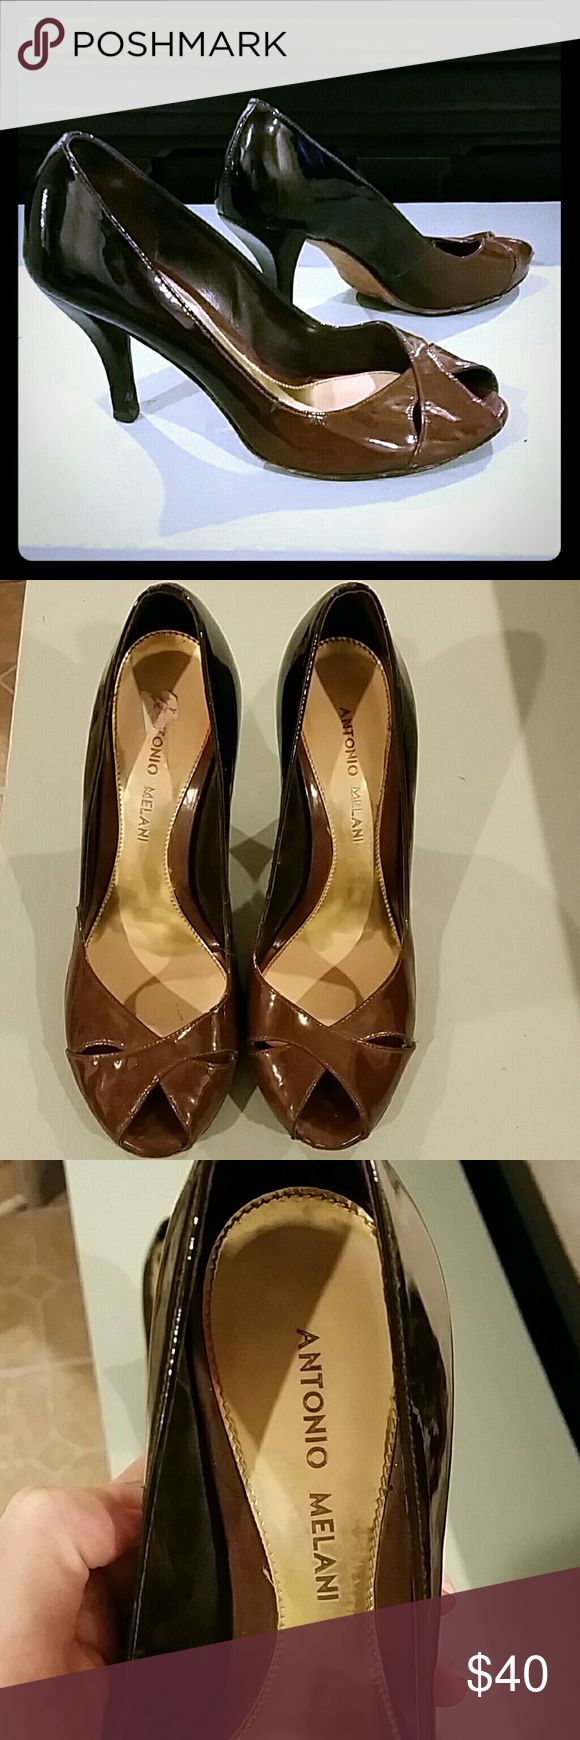 ANTONIO MELANI Antonio Melani. Perfect condition. Ombre look, espresso to medium brown. ANTONIO MELANI Shoes Heels